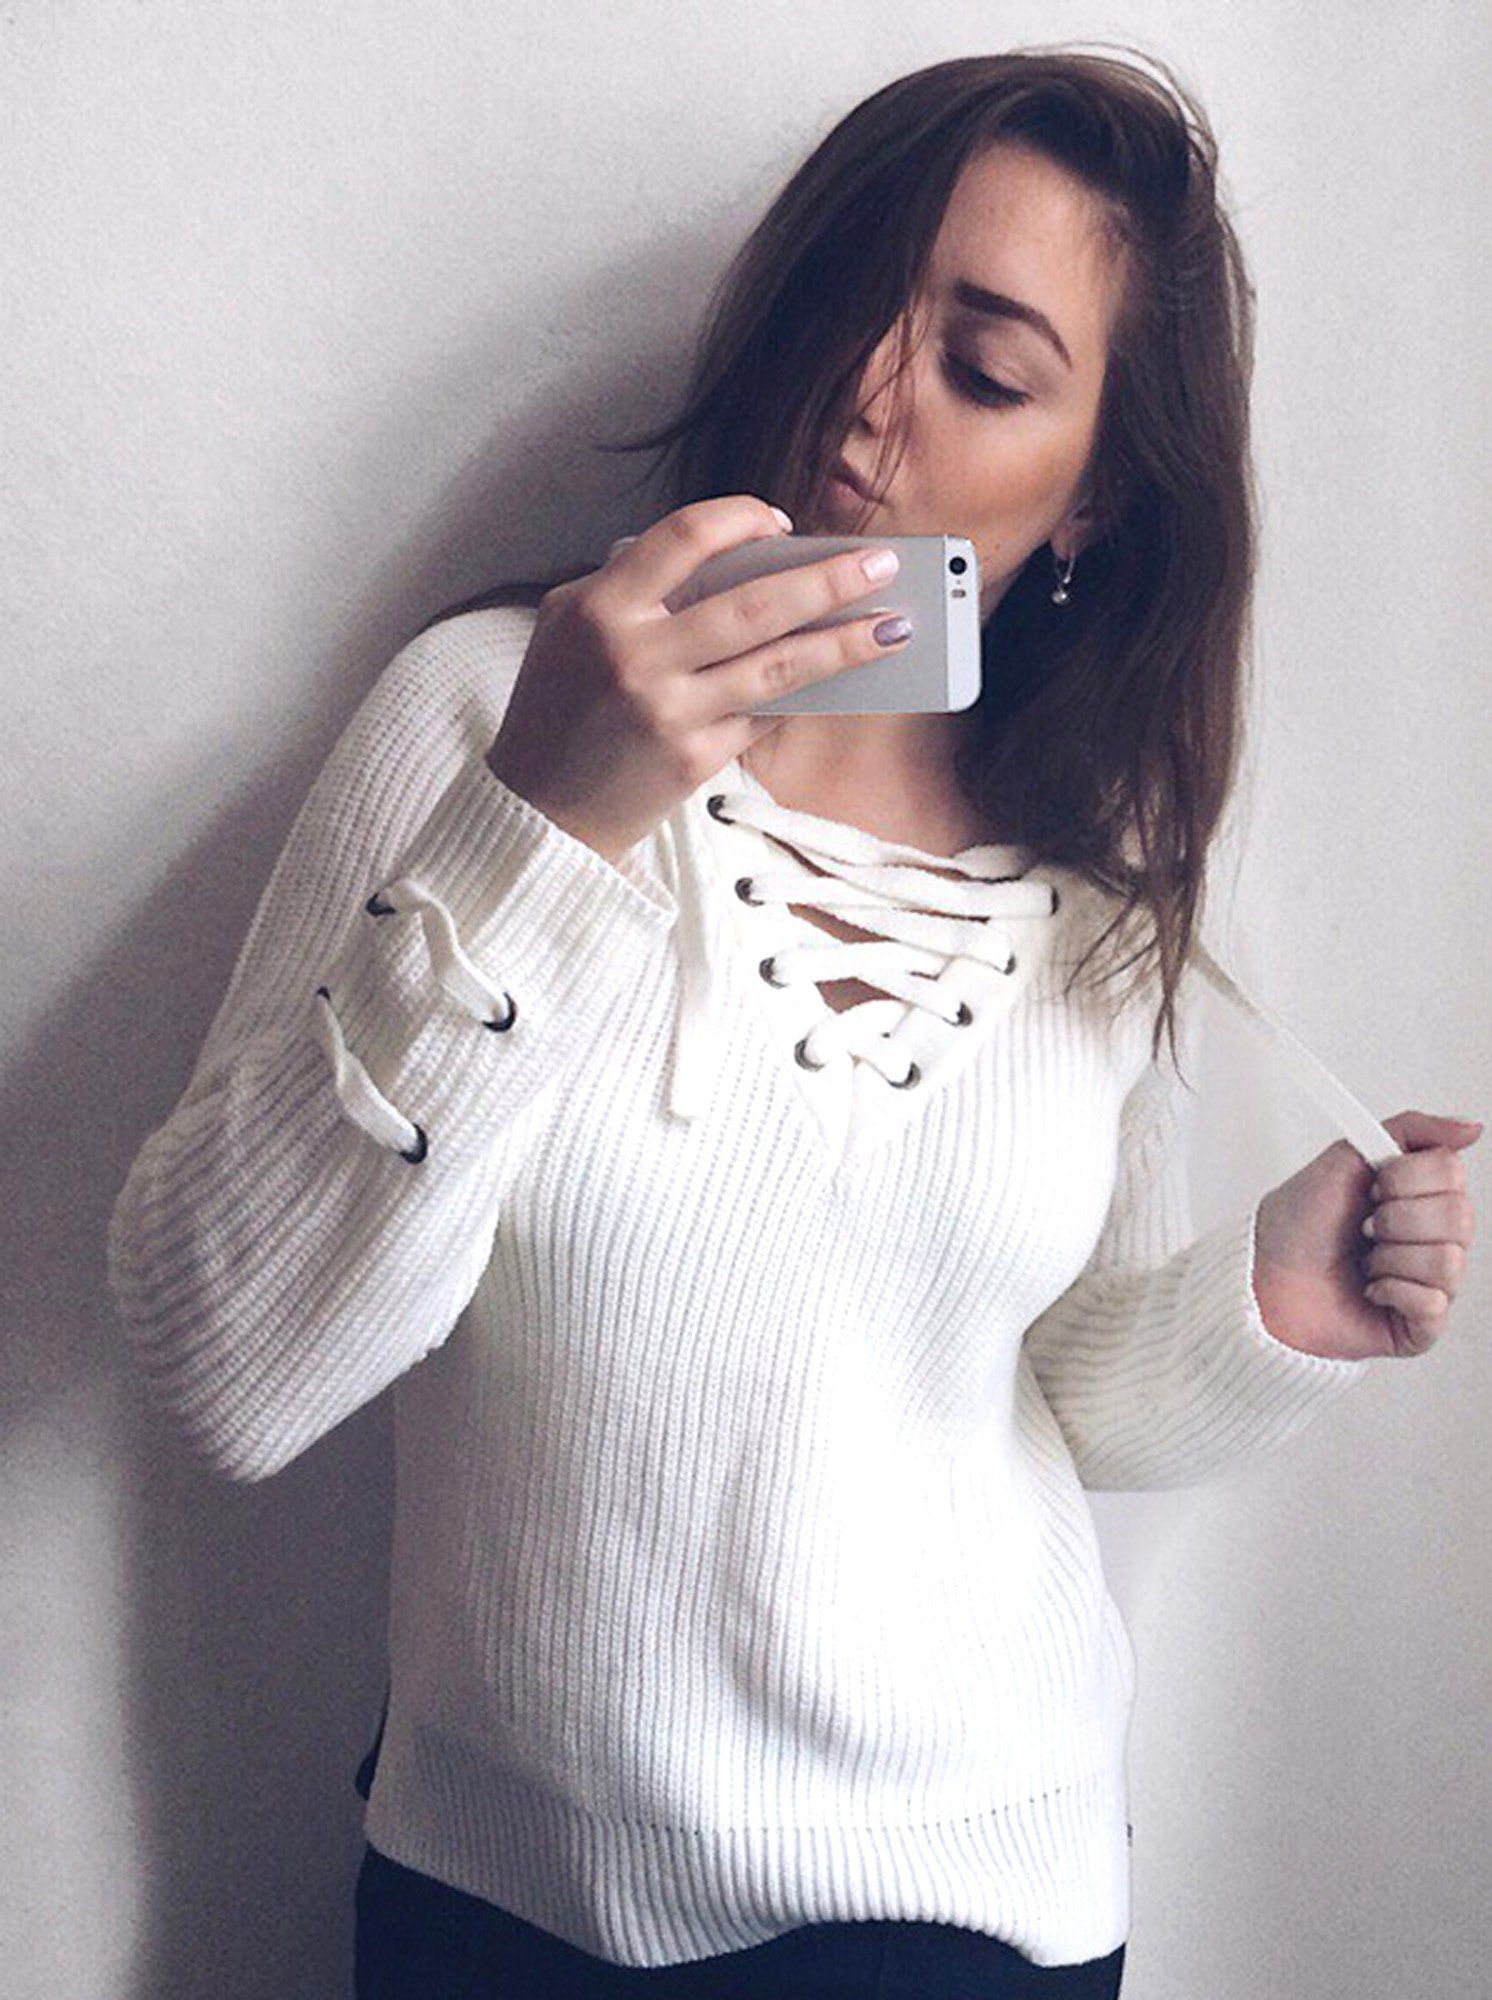 Cute Casual Spring Outfit Ideas for Teen Girls for School - Lace Up Criss  Cross Knitted Pullover Sweater with Jeans - Ideas lindas del equipo de  primavera ... e2c85791c